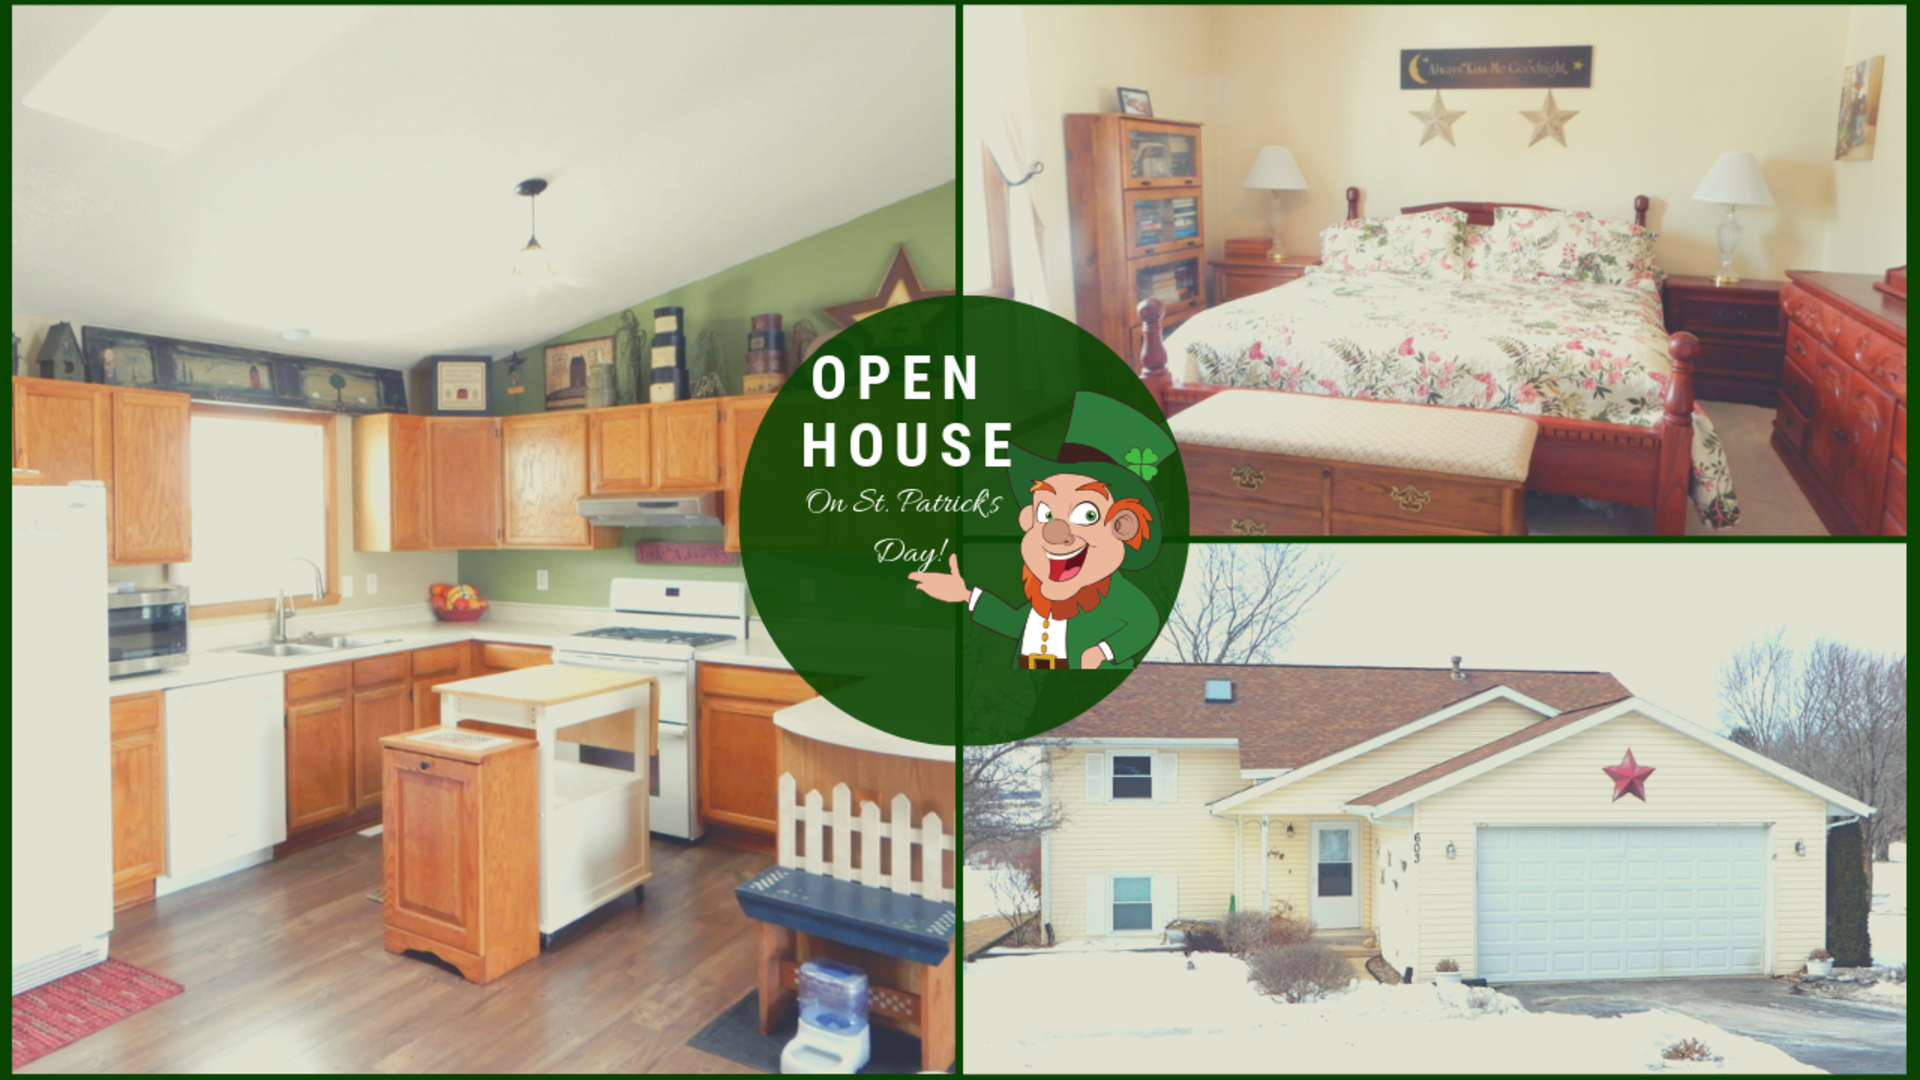 Open House: March 17th 2019